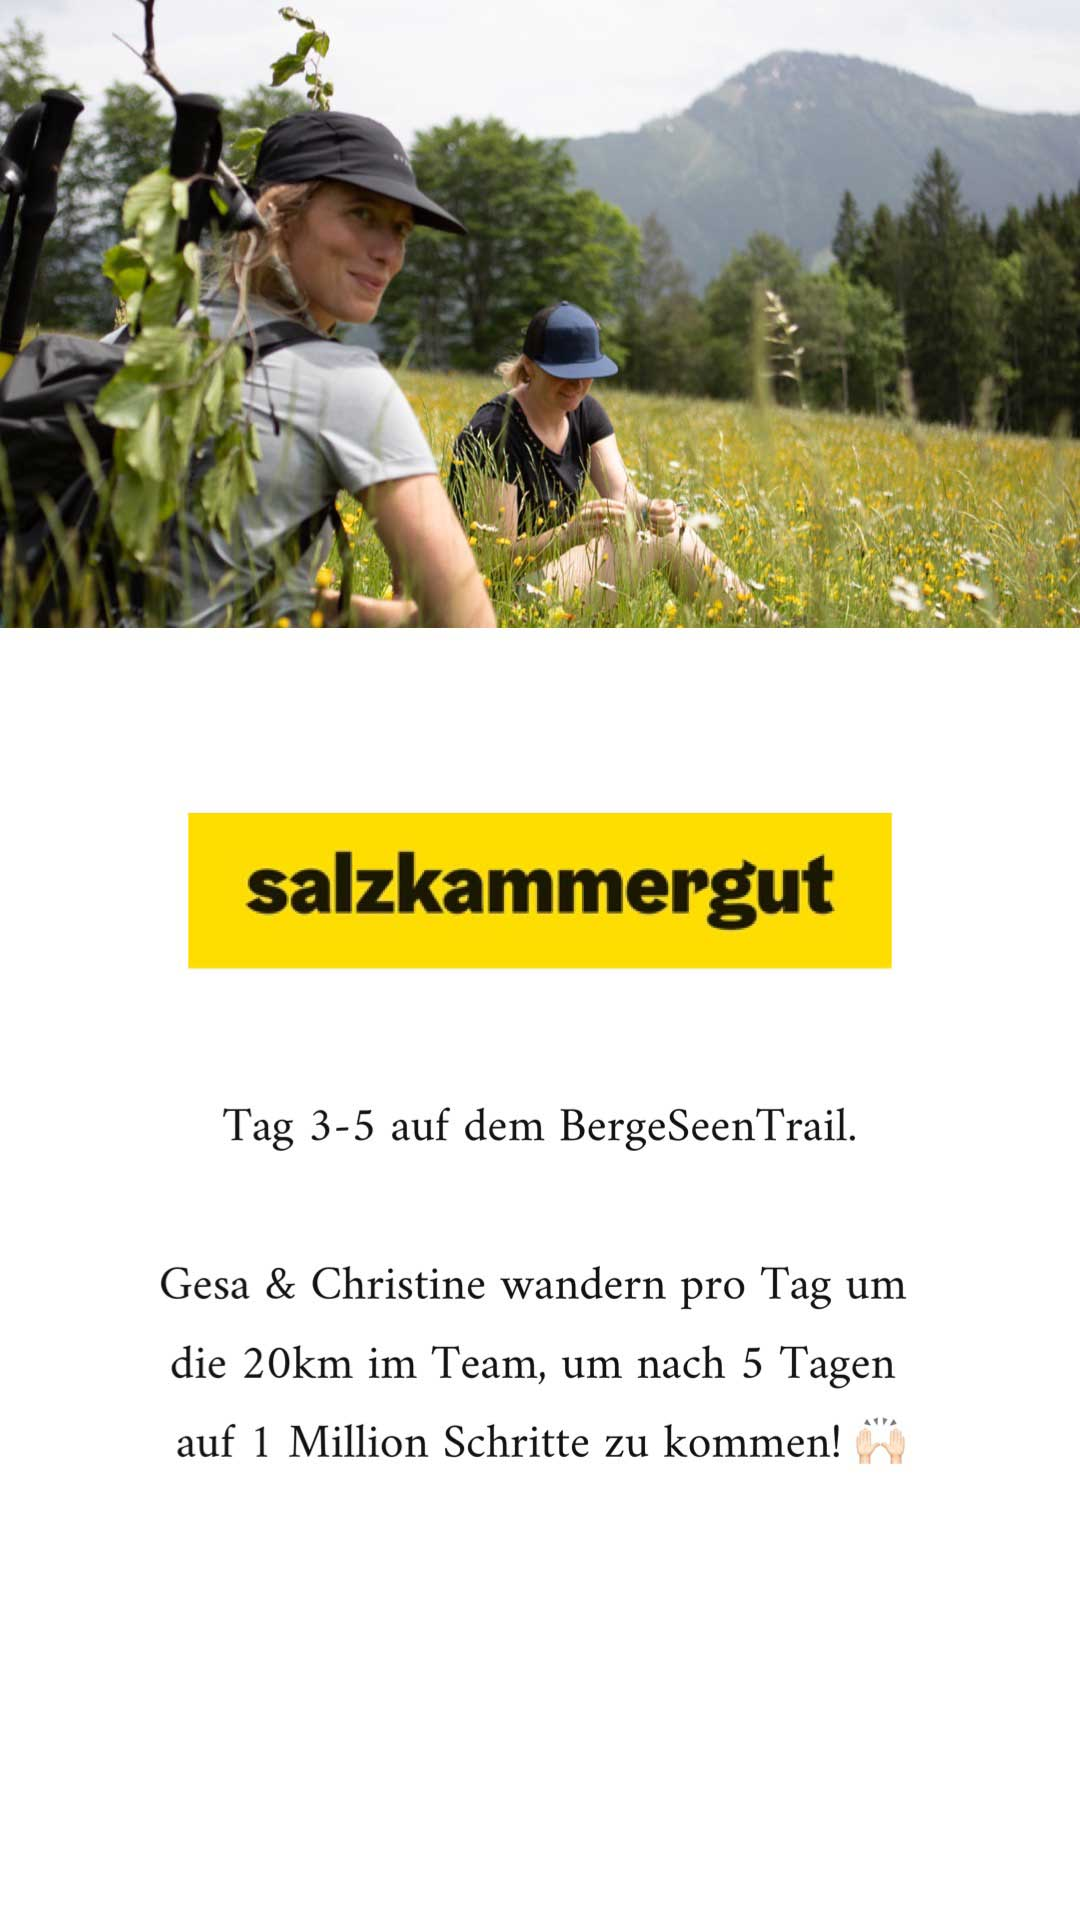 berge-seen-trail-salzkammergut-tag3-munichmountaingirls